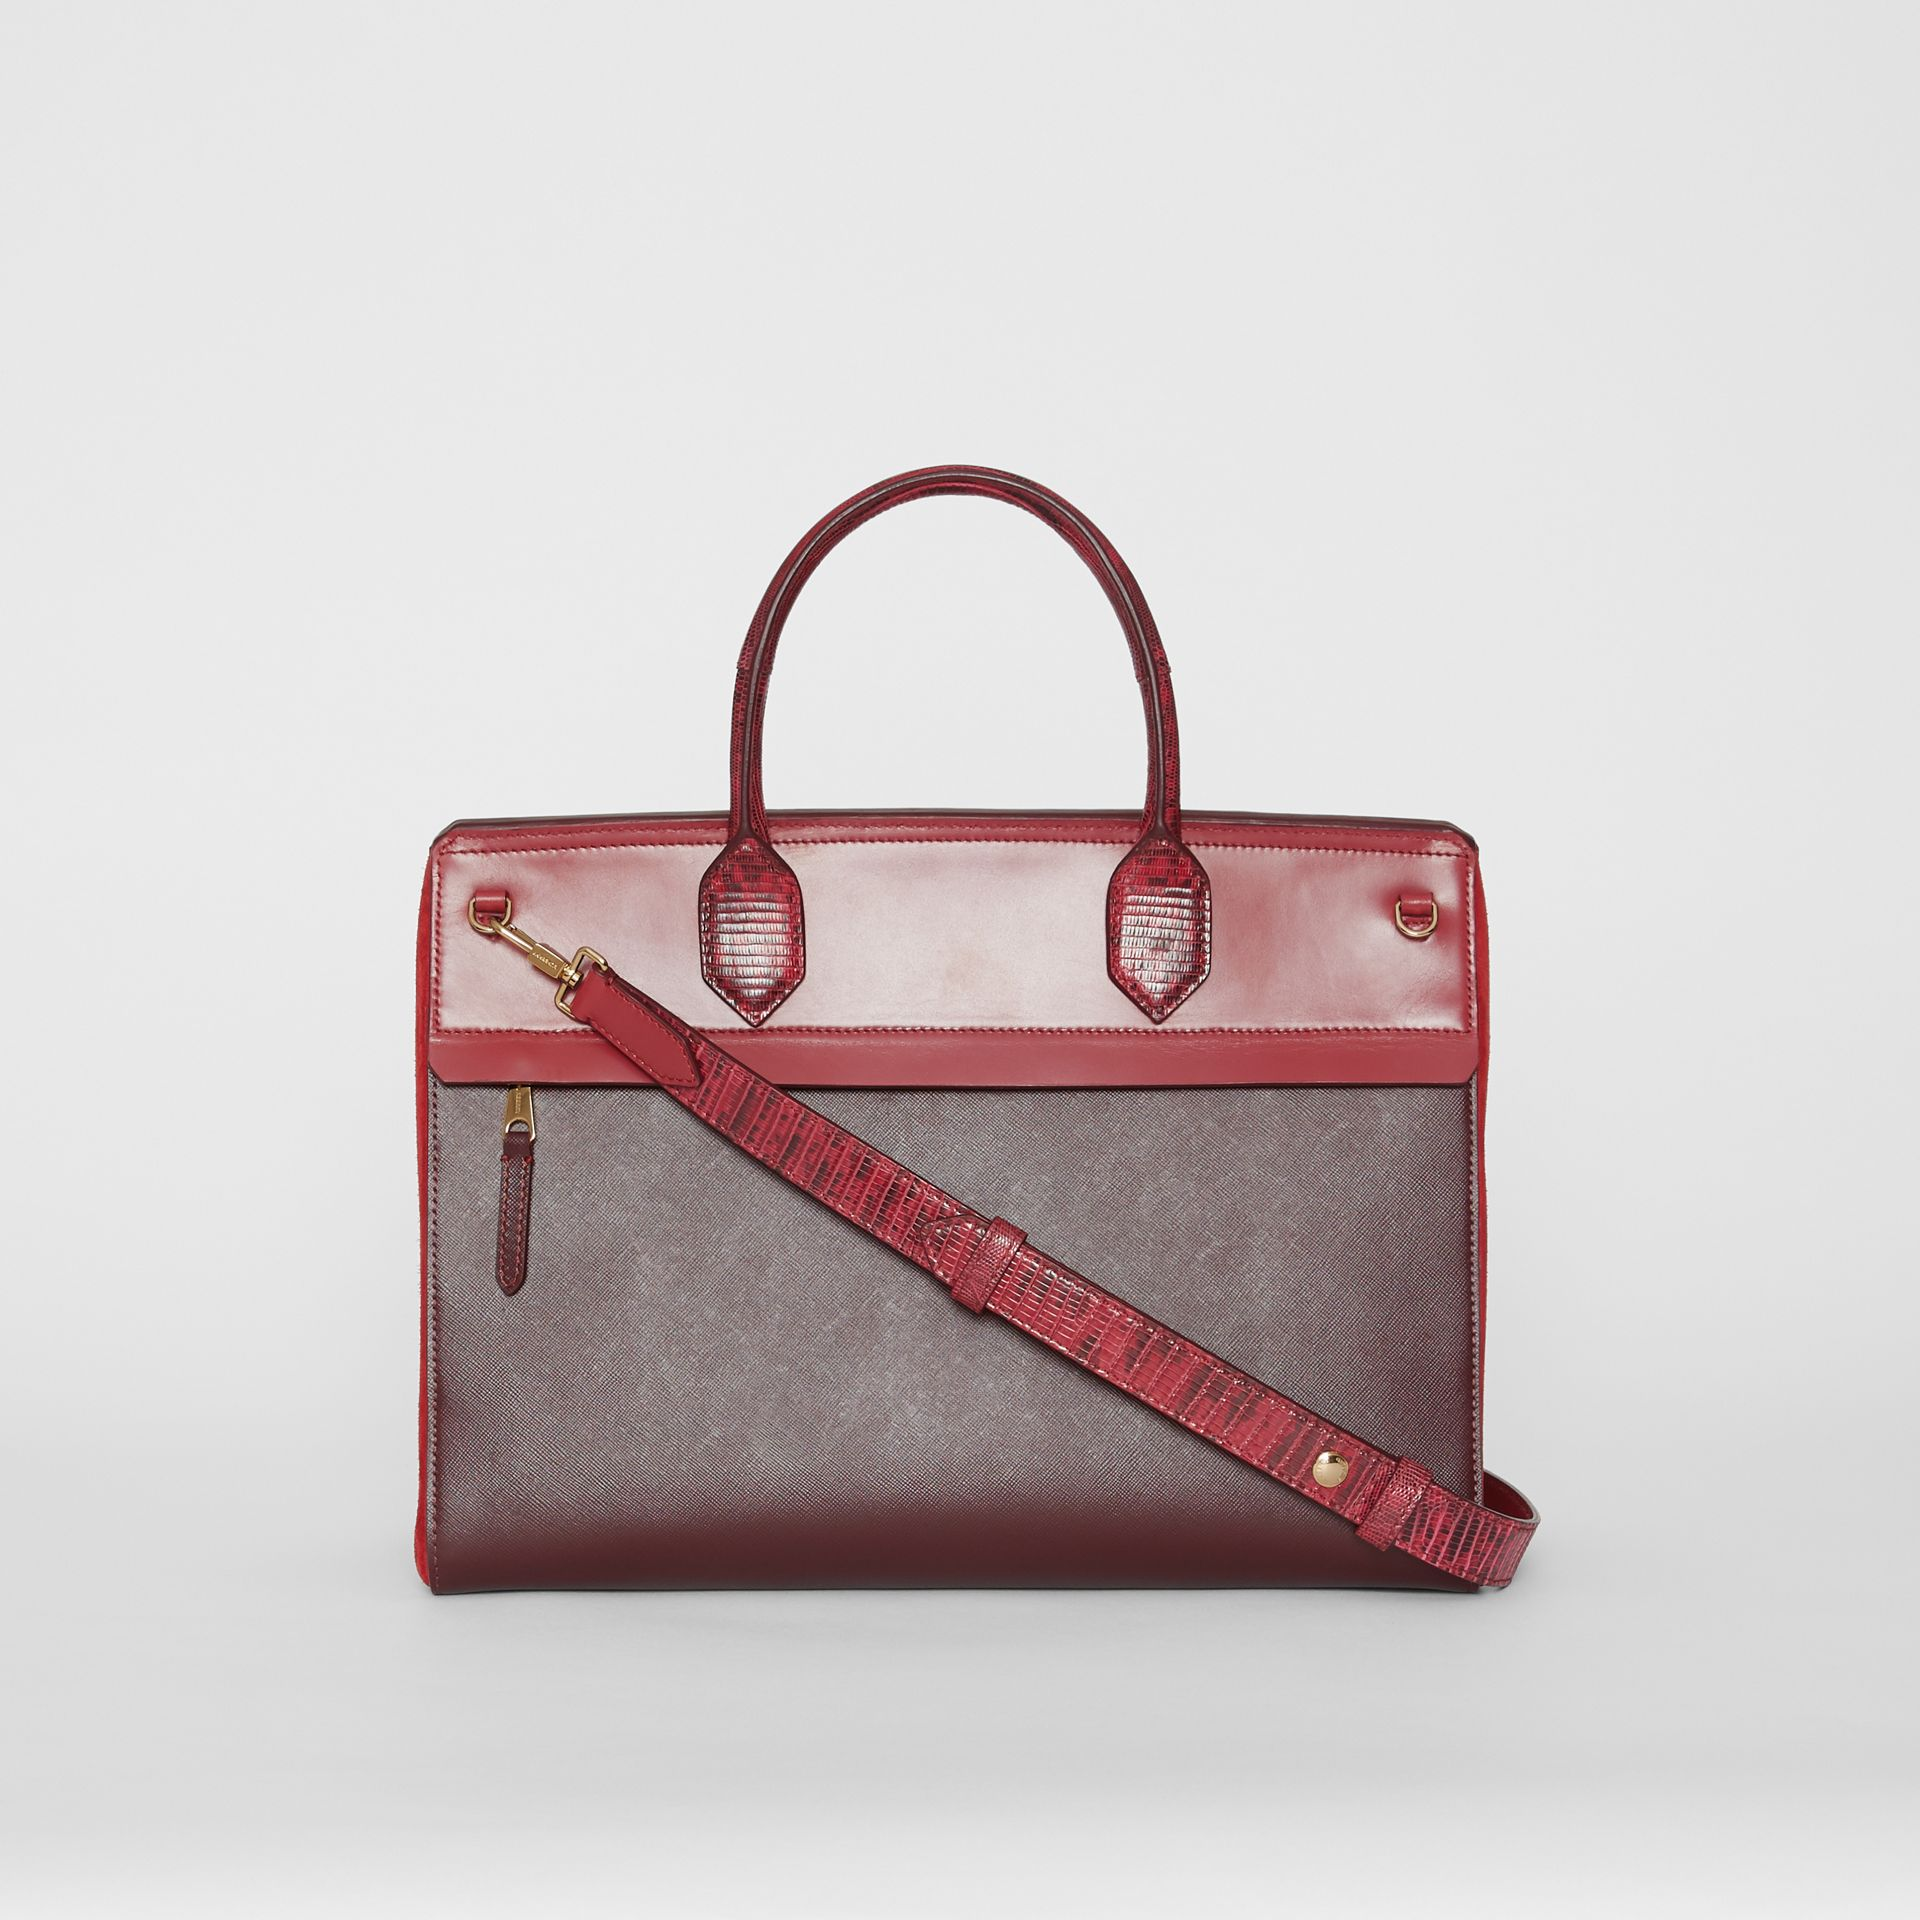 Medium Leather and Suede Elizabeth Bag in Crimson - Women | Burberry Australia - gallery image 7